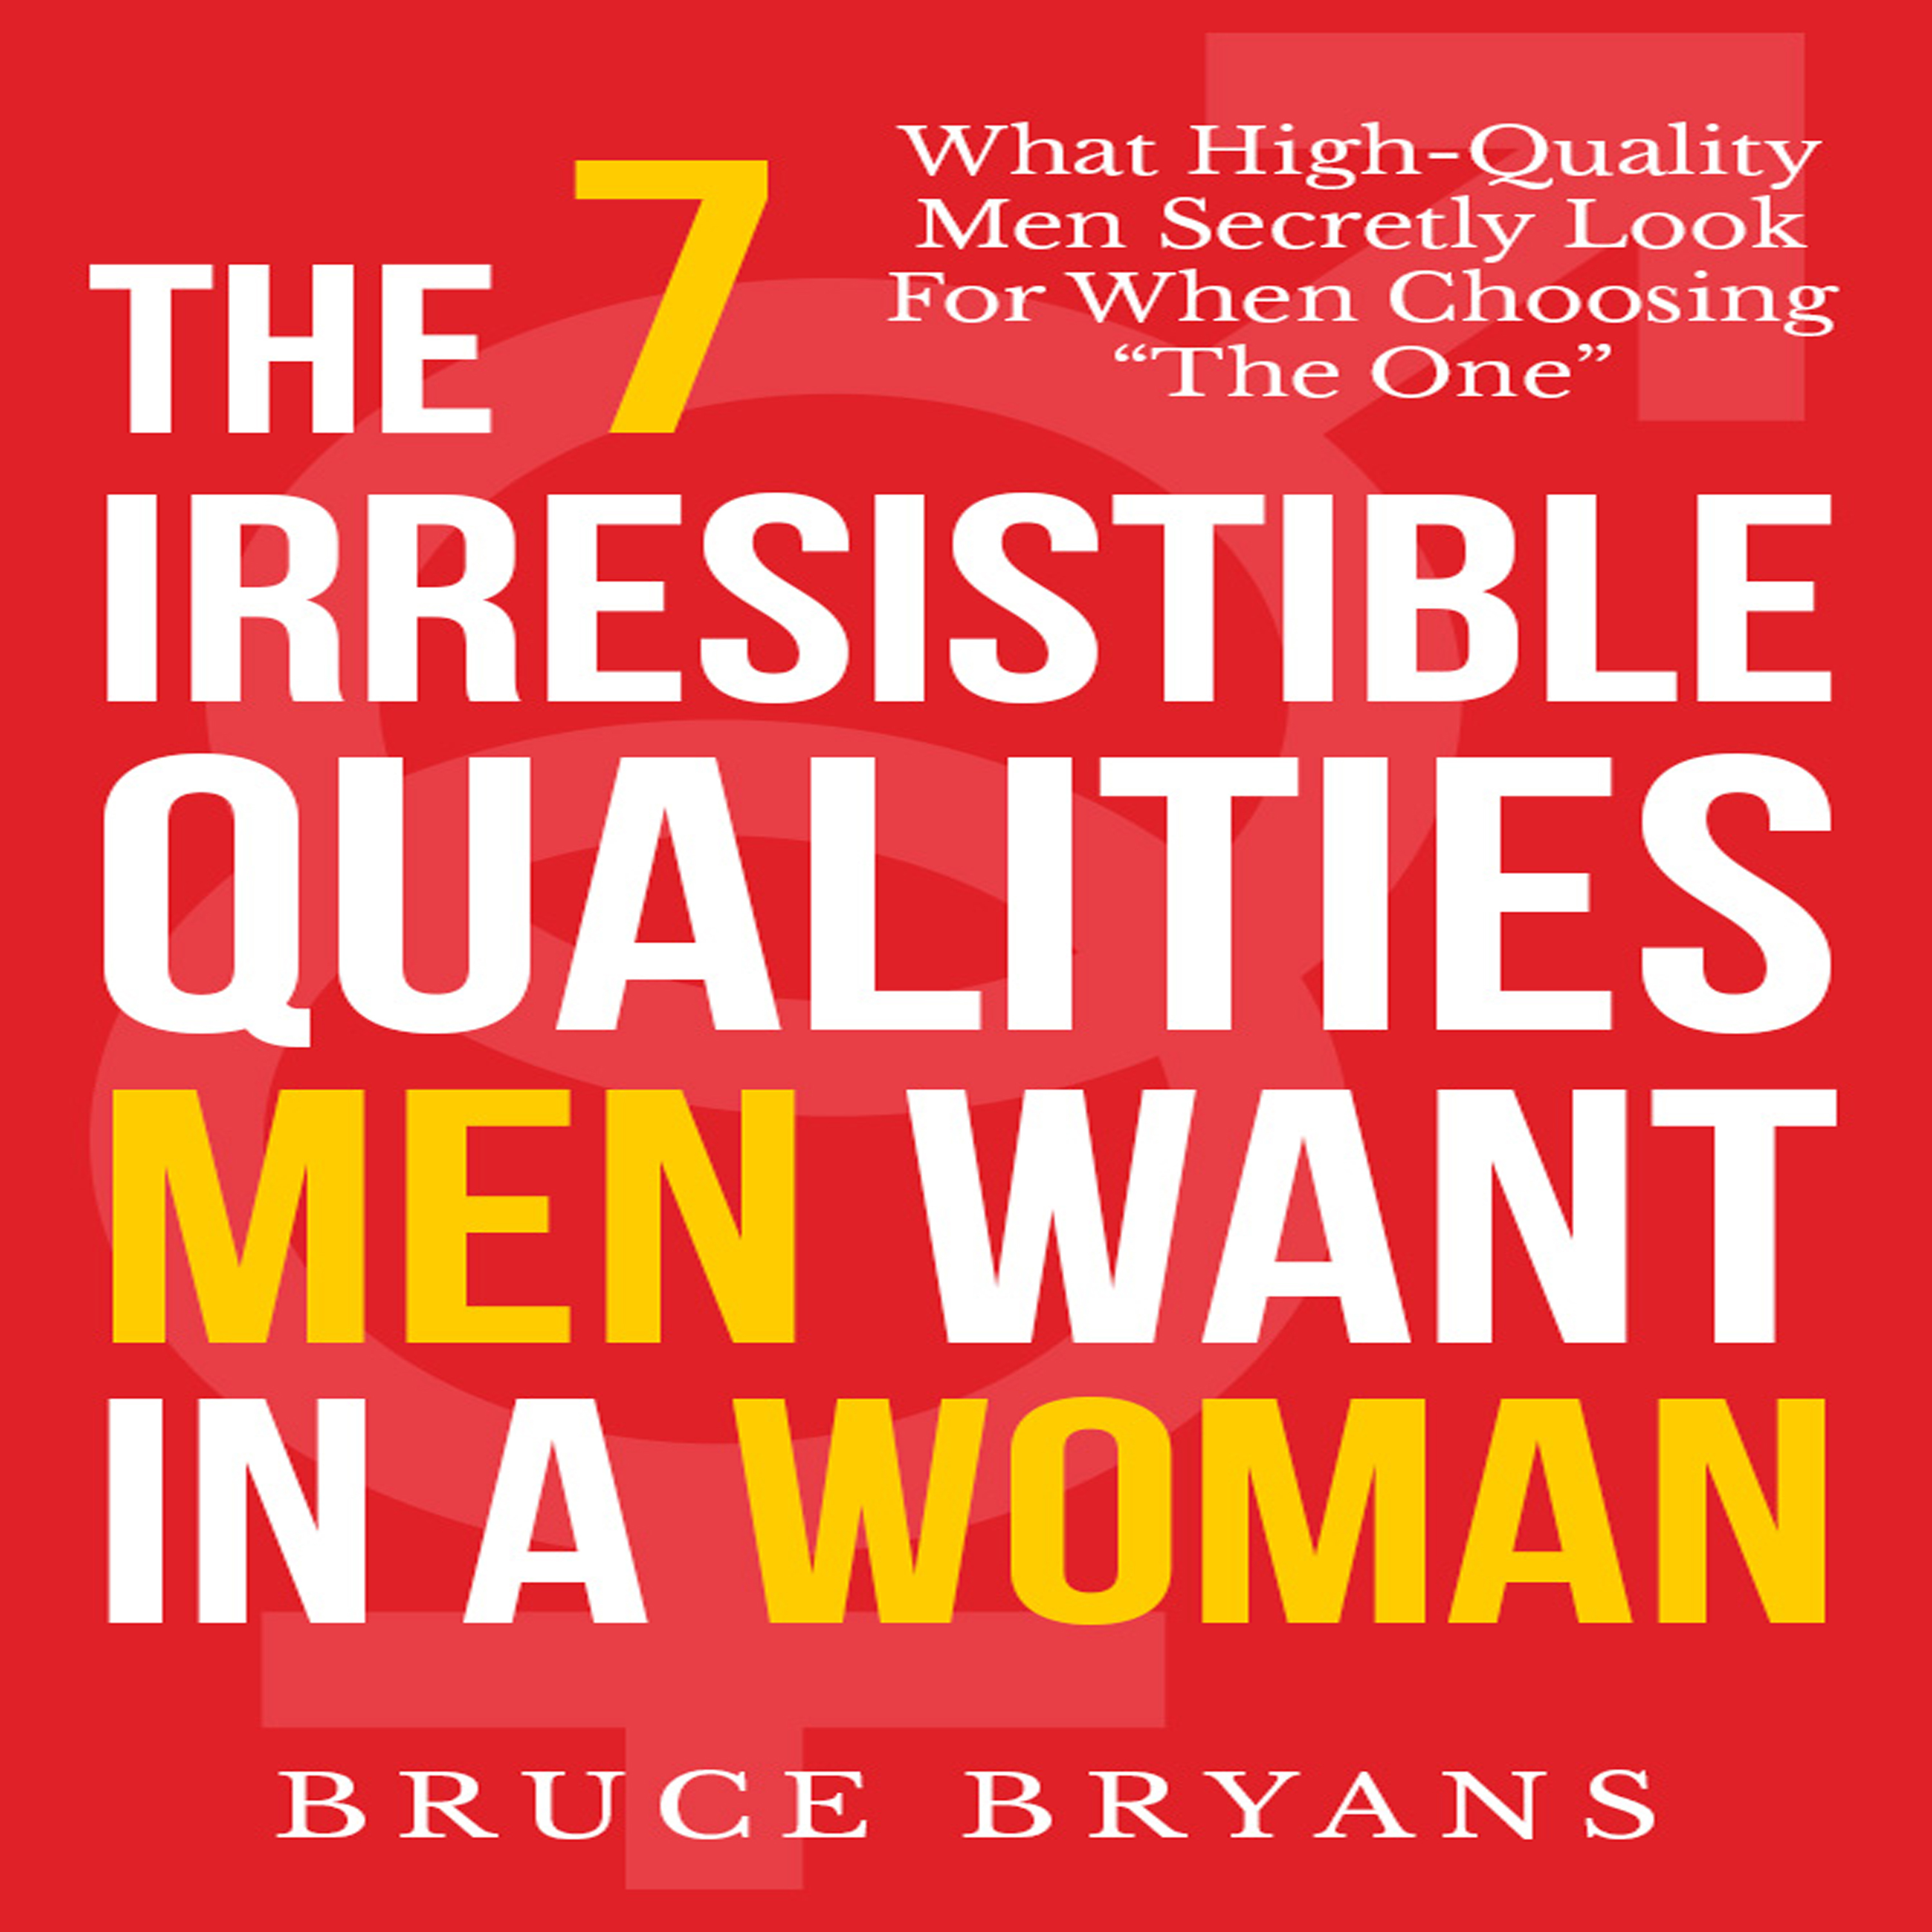 Printable The 7 Irresistible Qualities Men Want In a Woman: What High-Quality Men Secretly Look for When Choosing the One Audiobook Cover Art